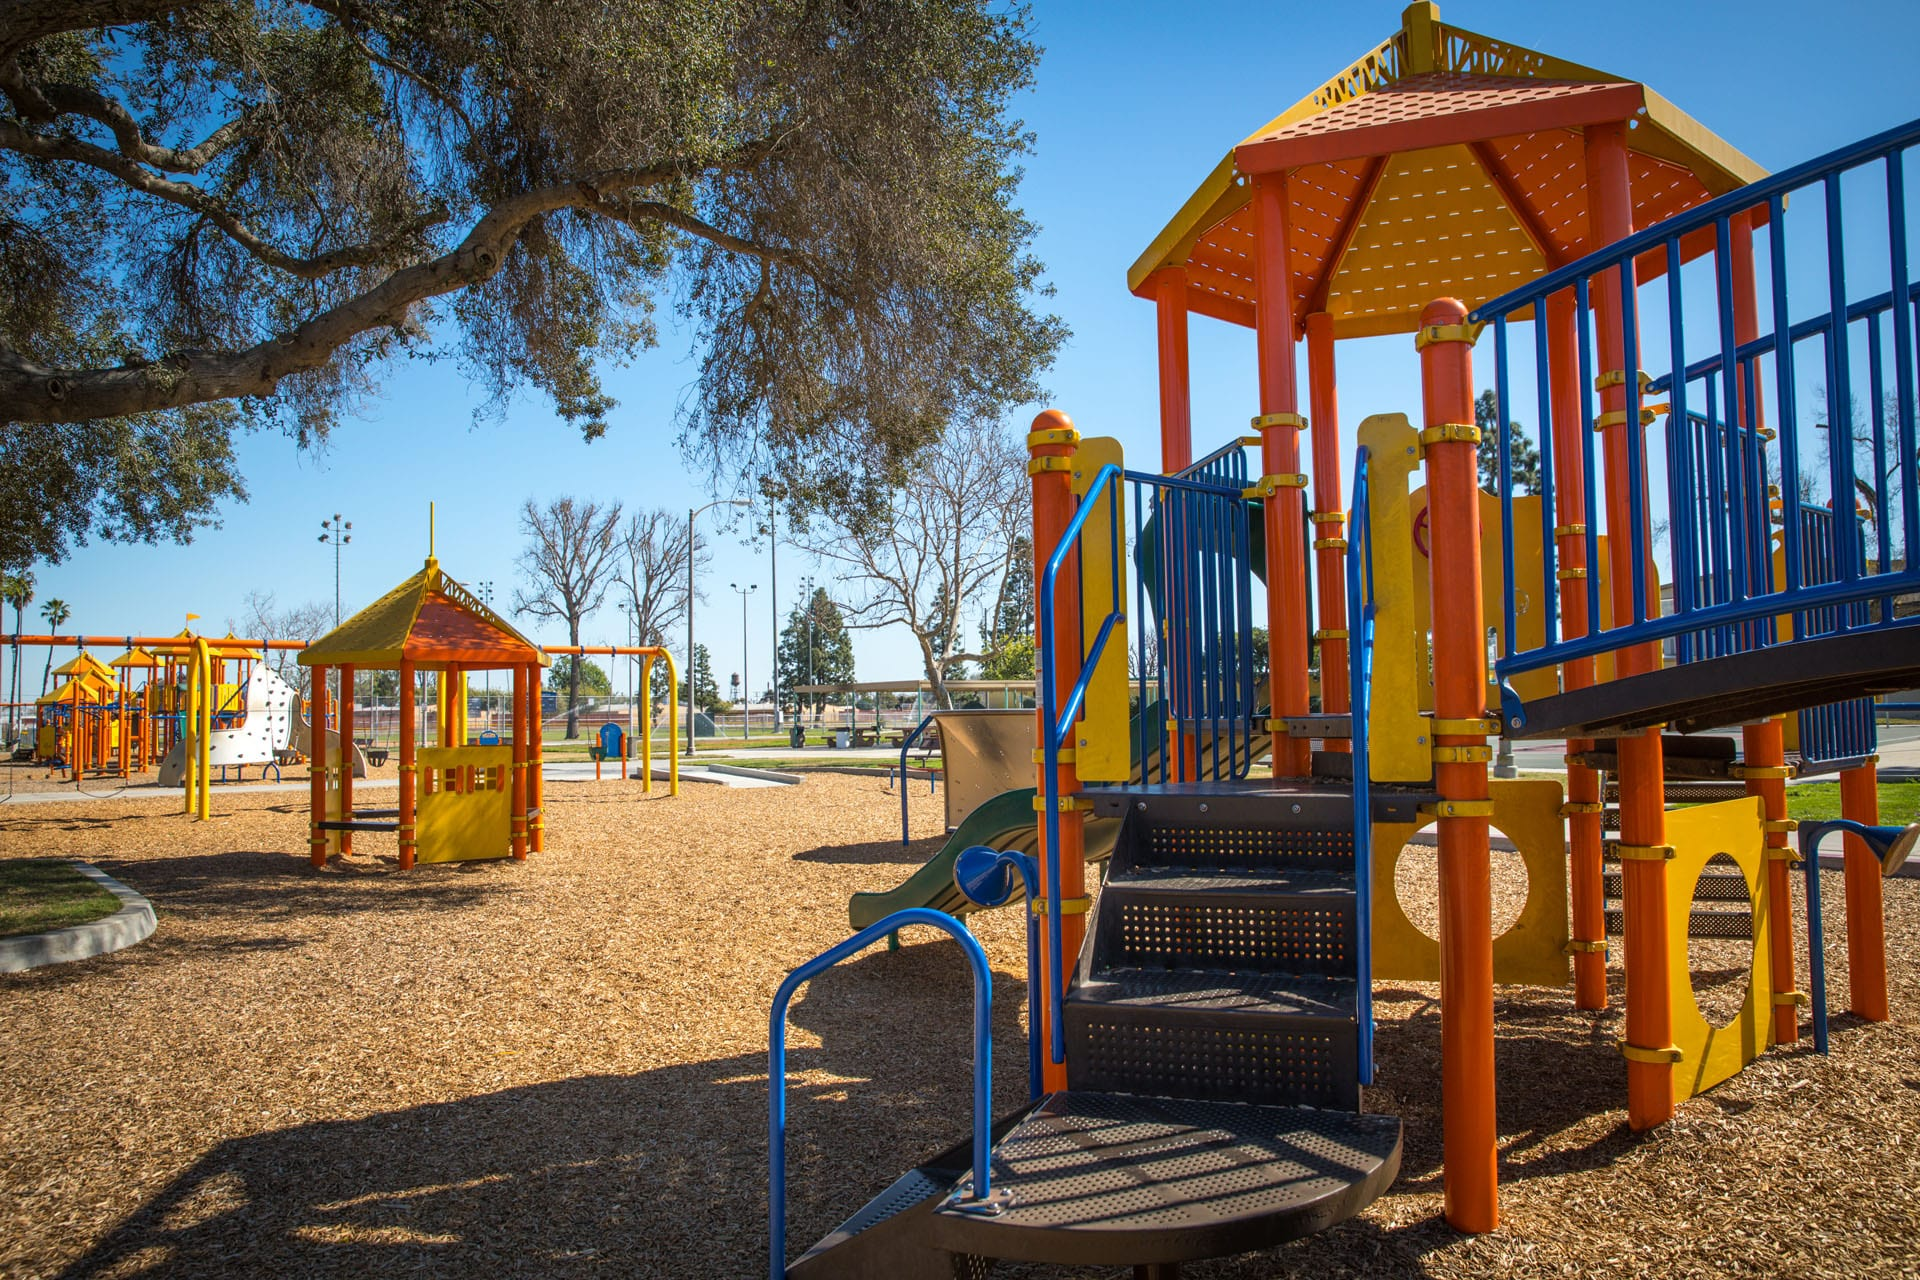 Playgrounds, gazebo and a swing set